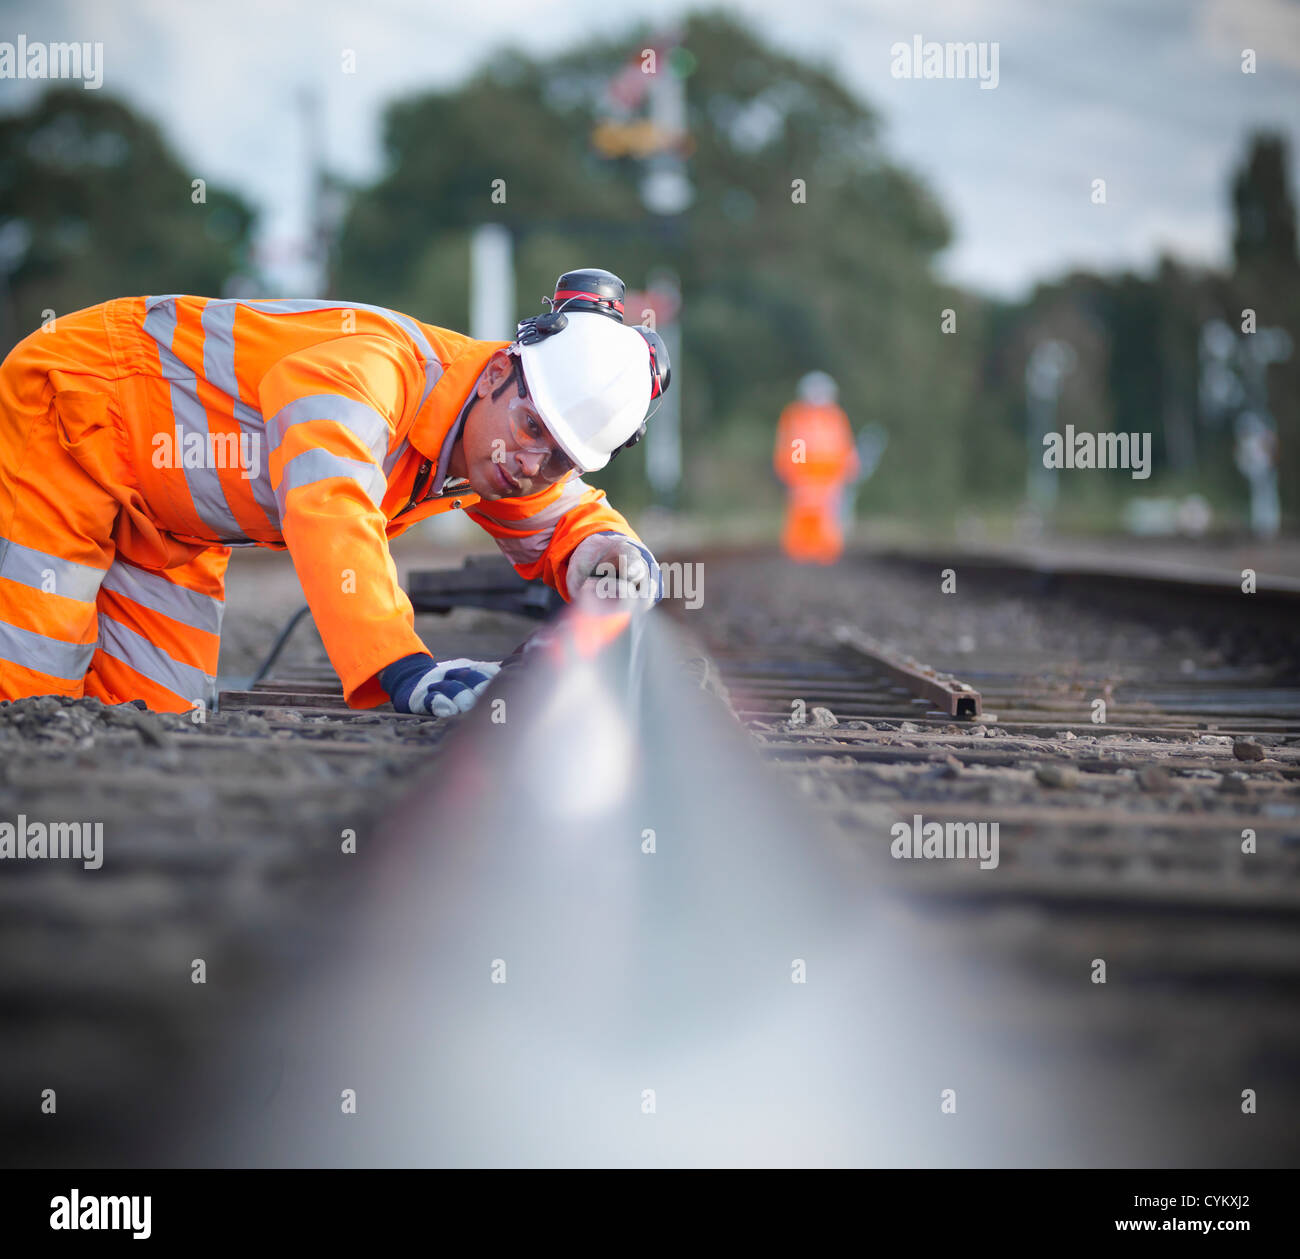 Railway worker examining train tracks - Stock Image